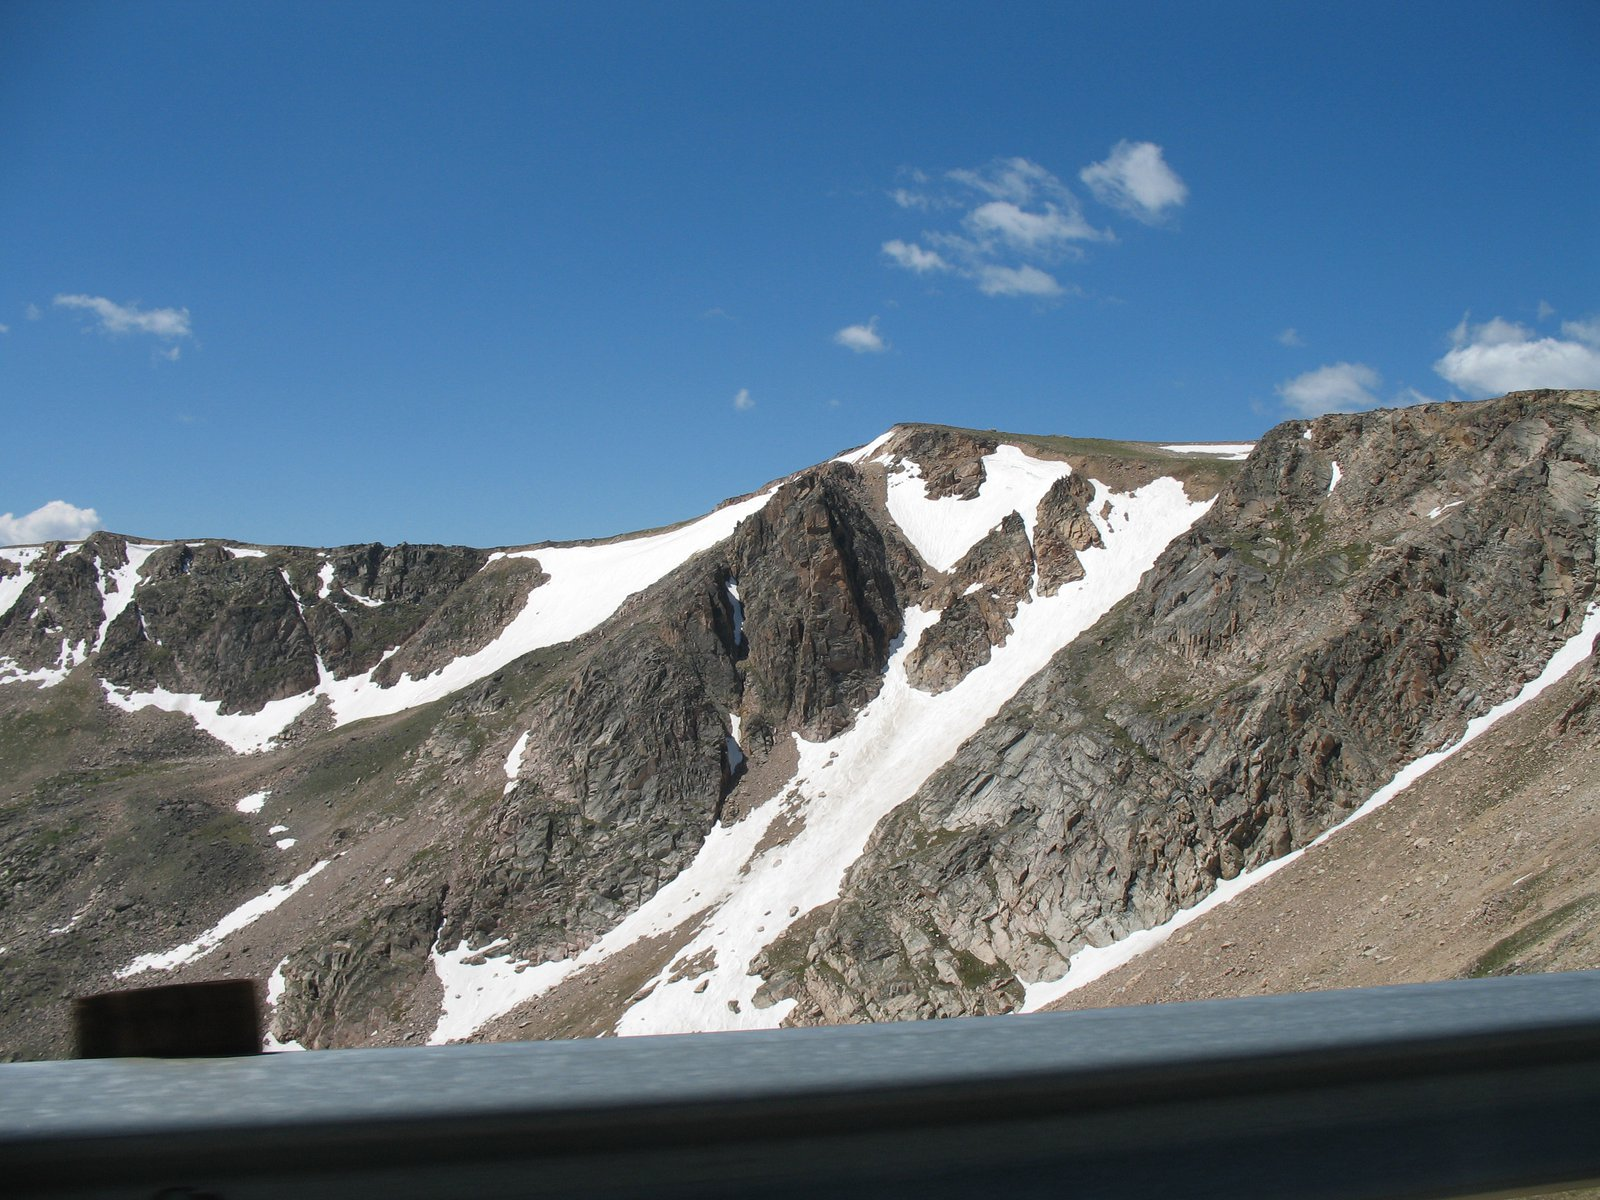 Beartooth pass garner headwall